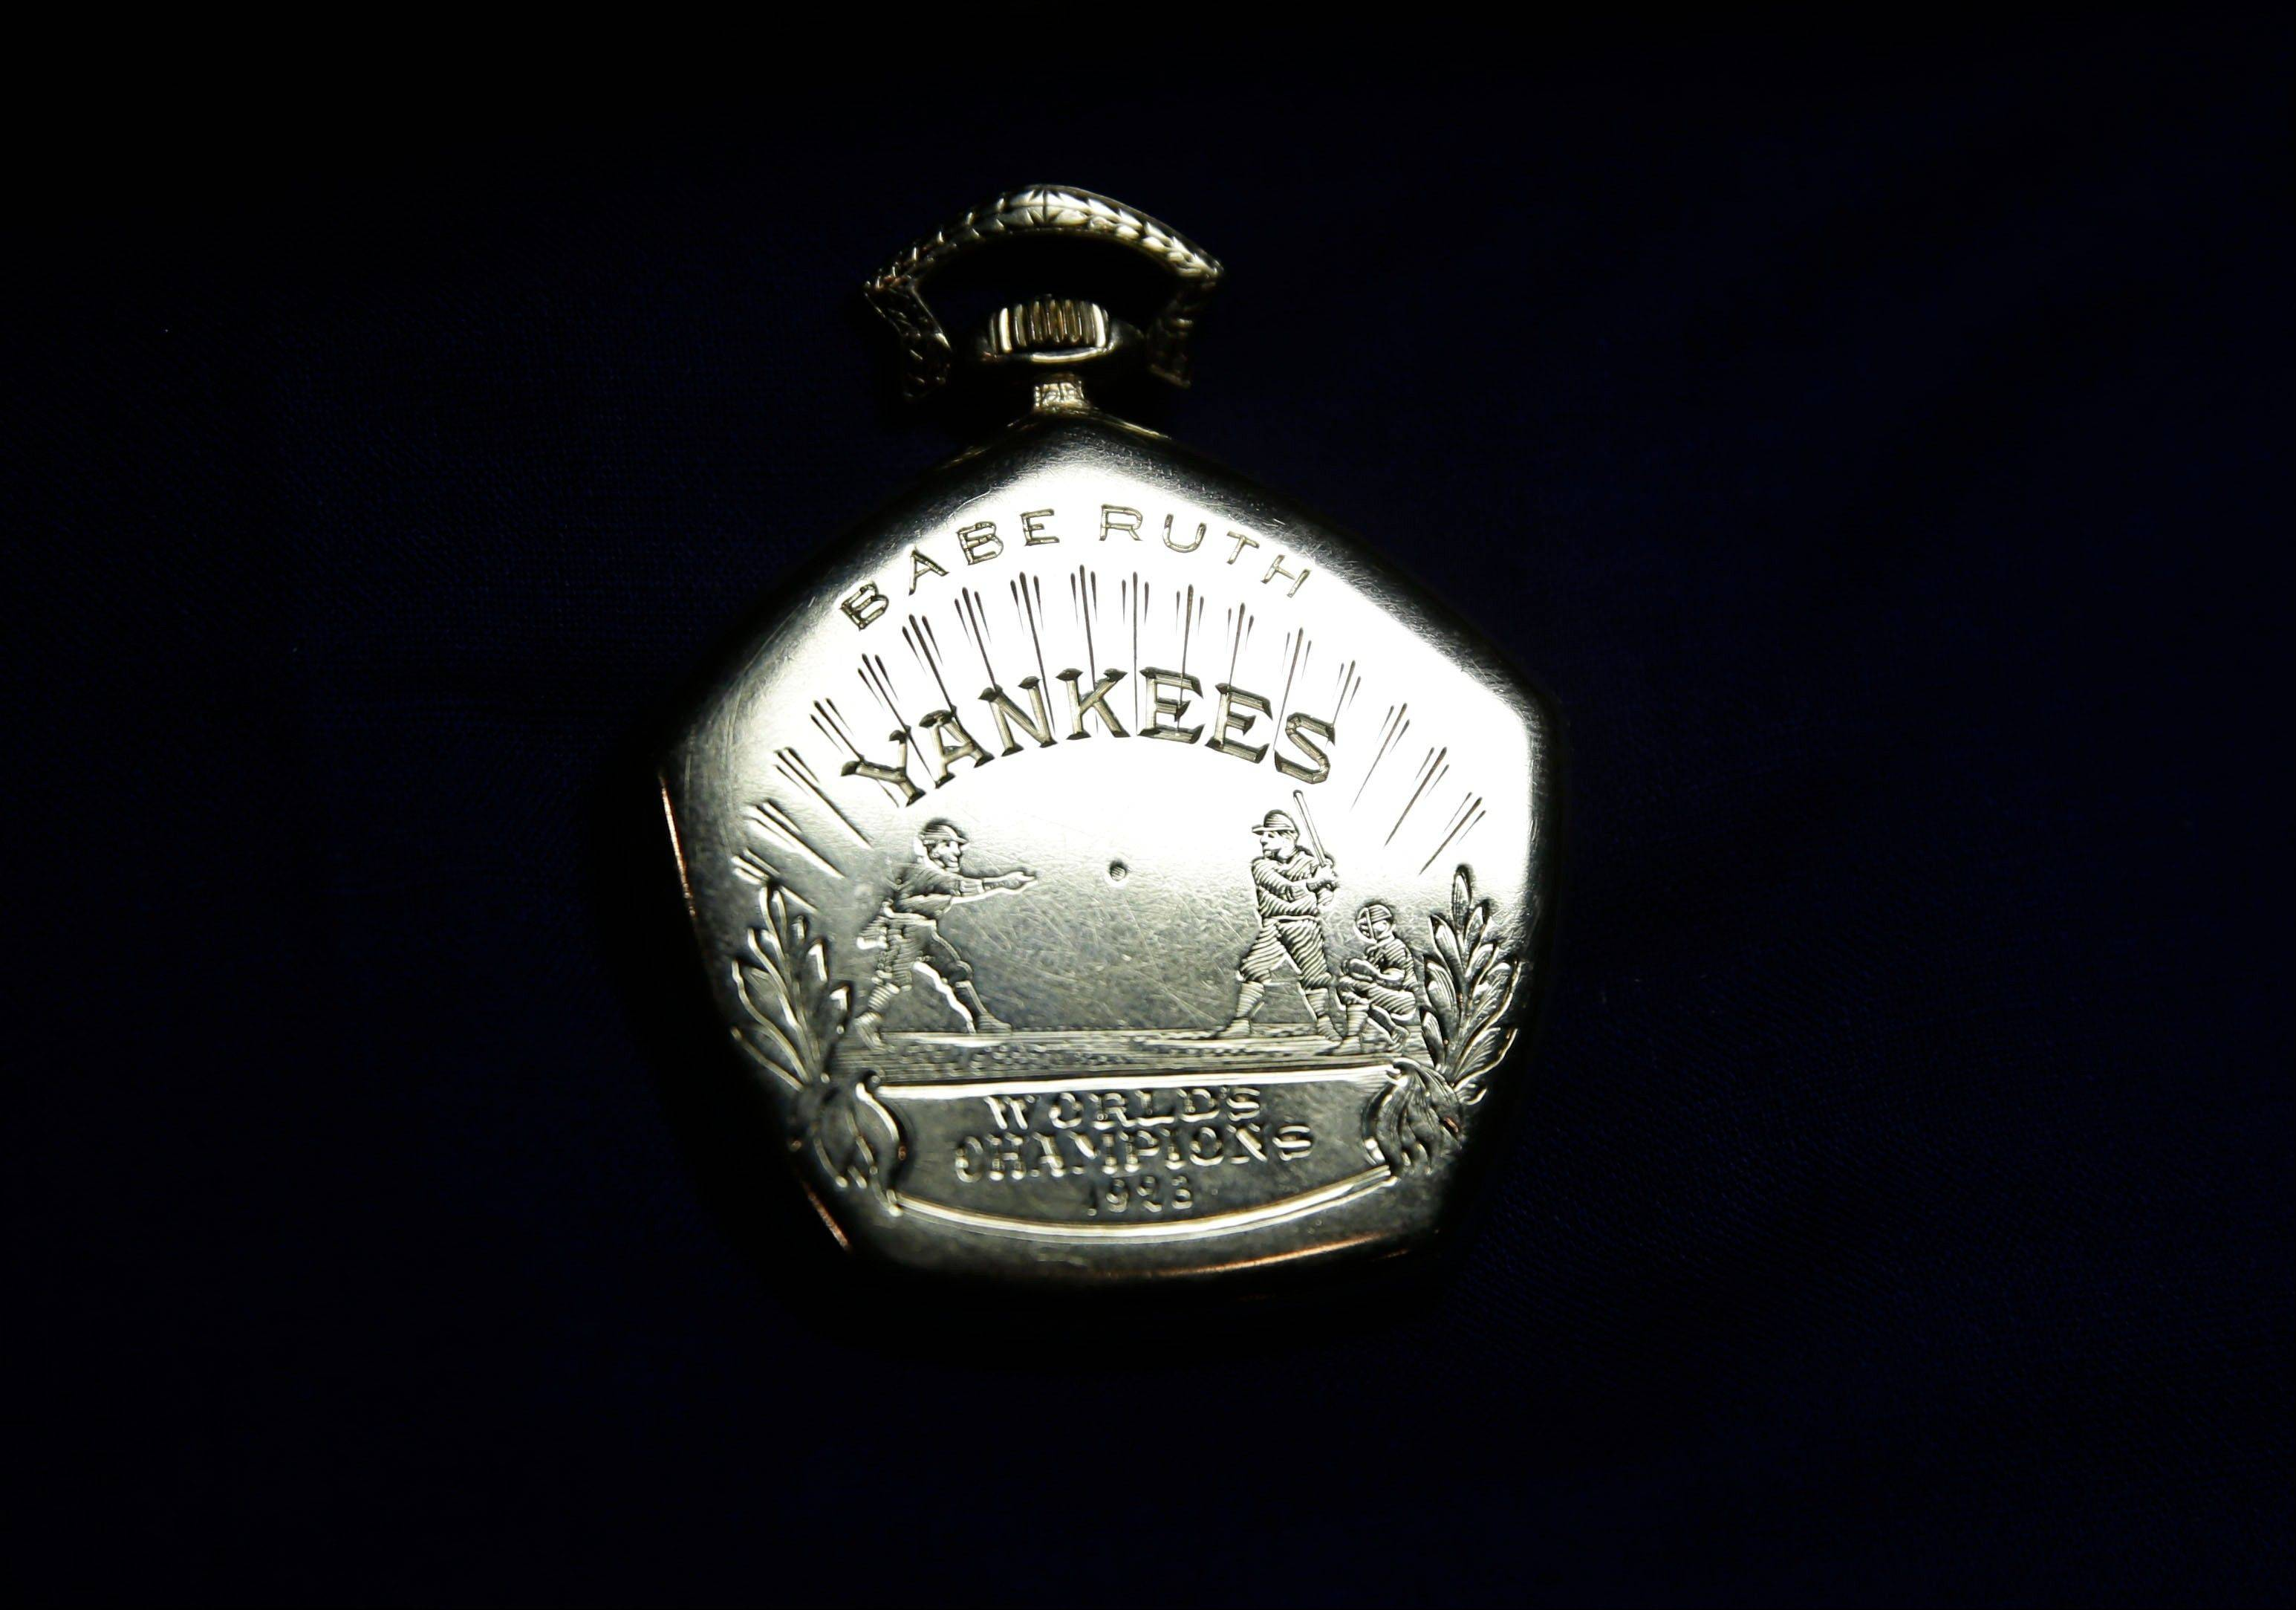 A pocket watch that was given to Babe Ruth in 1923 at Heritage Auctions office in Dallas.